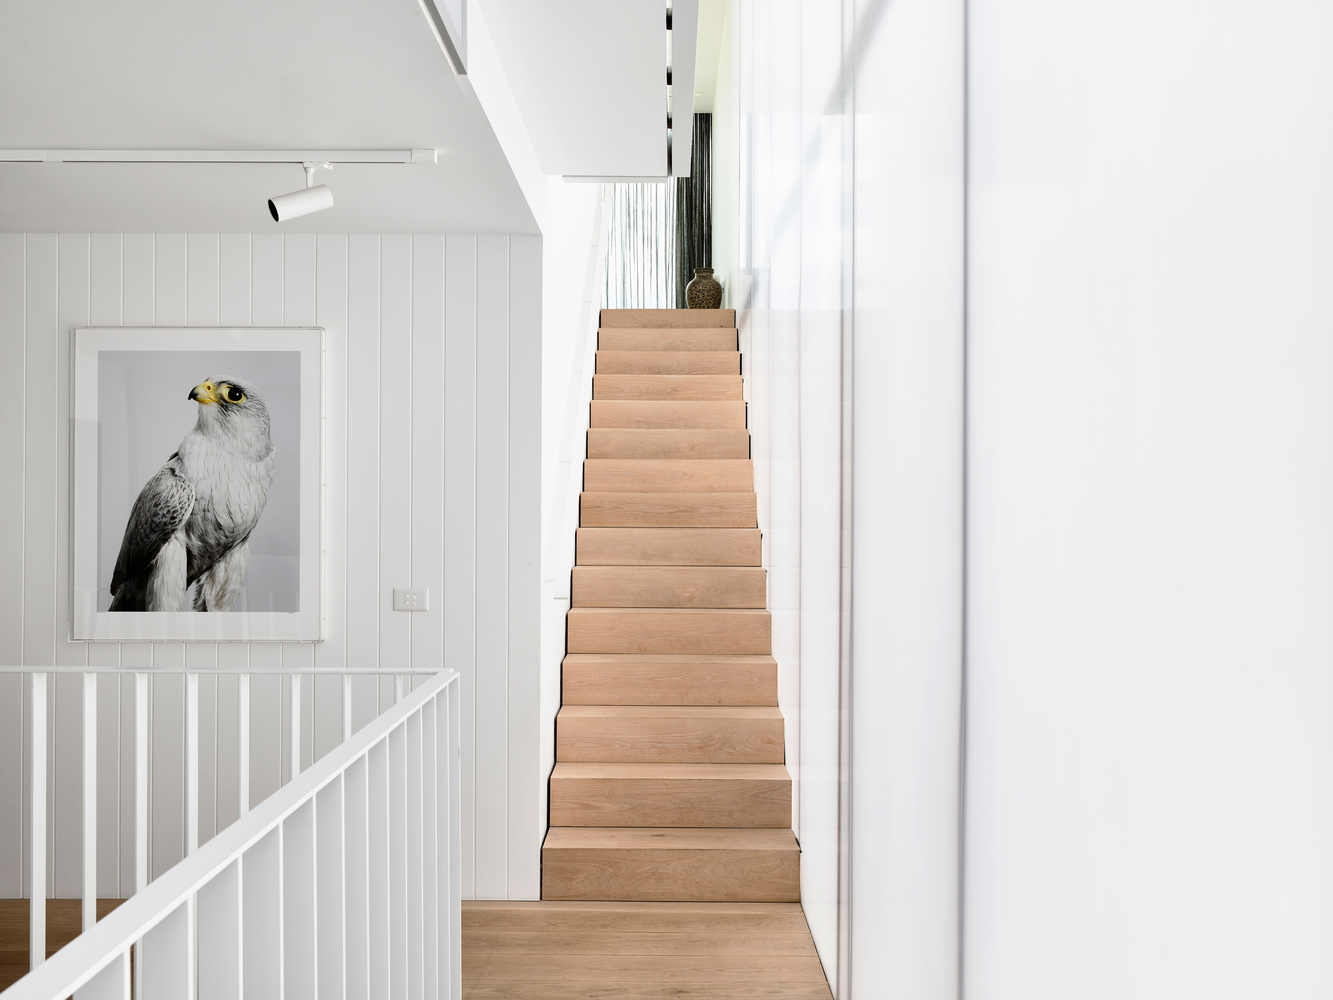 You Won't Believe the Home They Created in This Narrow Laneway